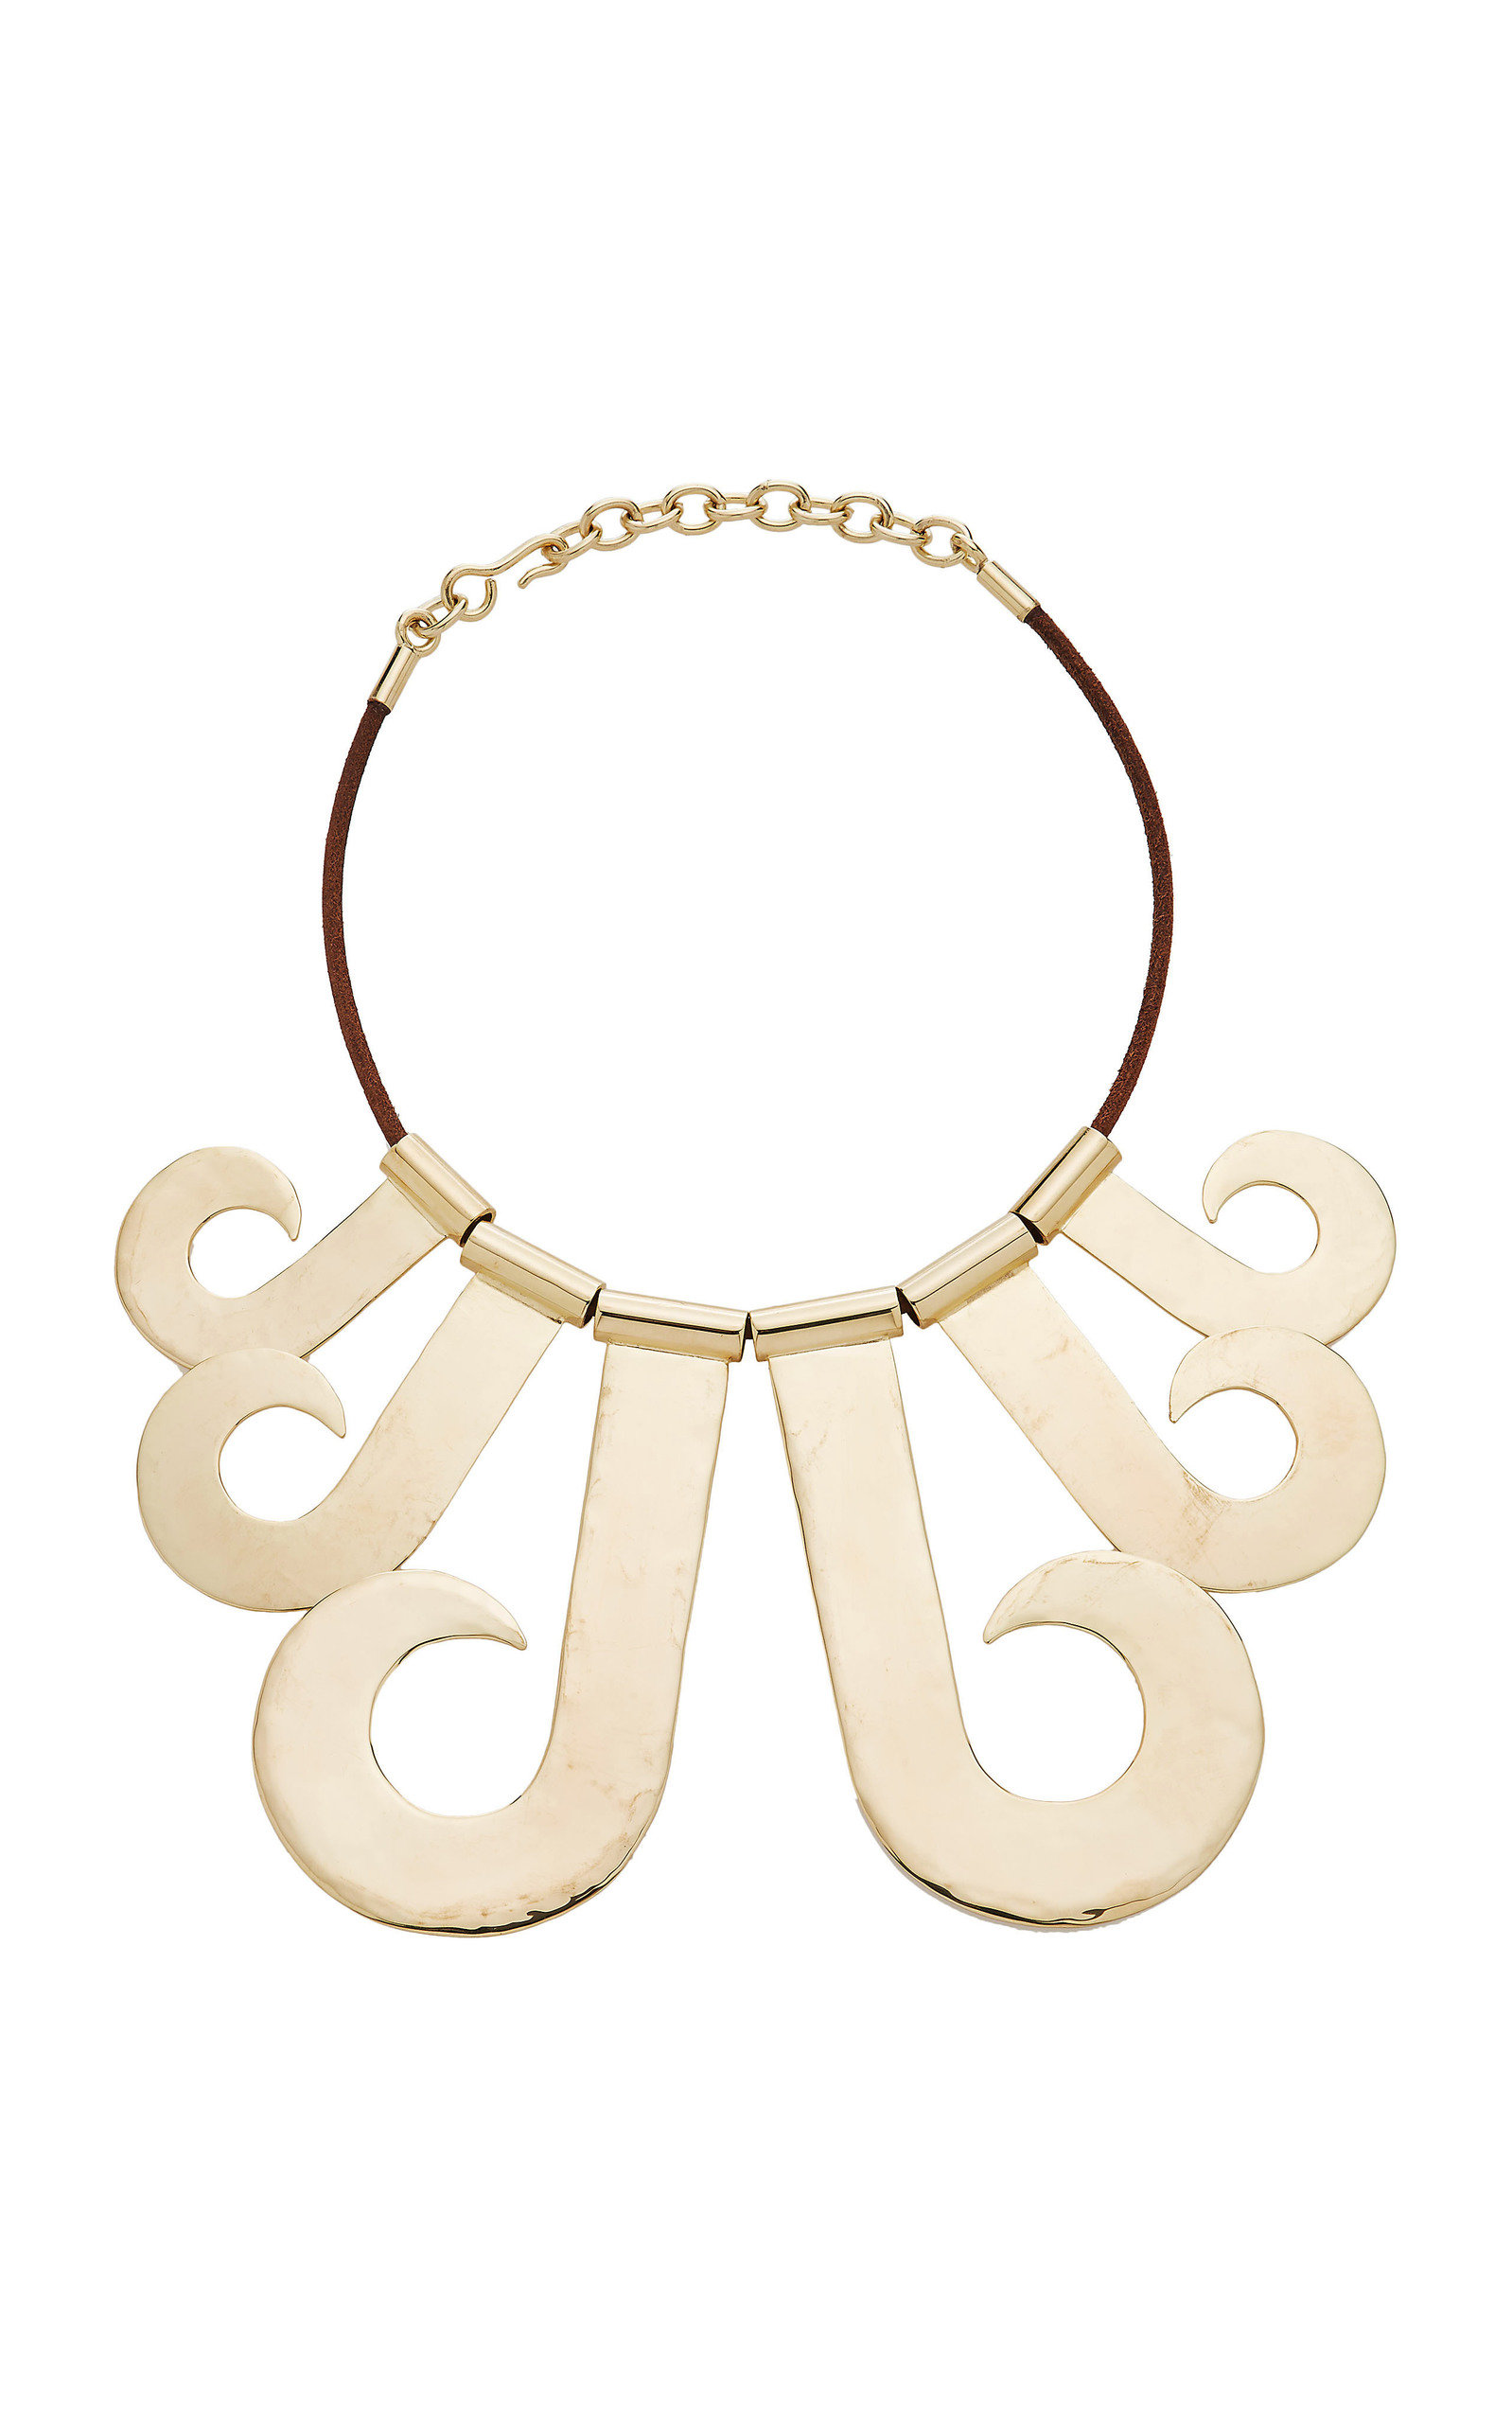 Aracano_Aros_Gold_Waves_Necklace_Moda_Operando.jpg